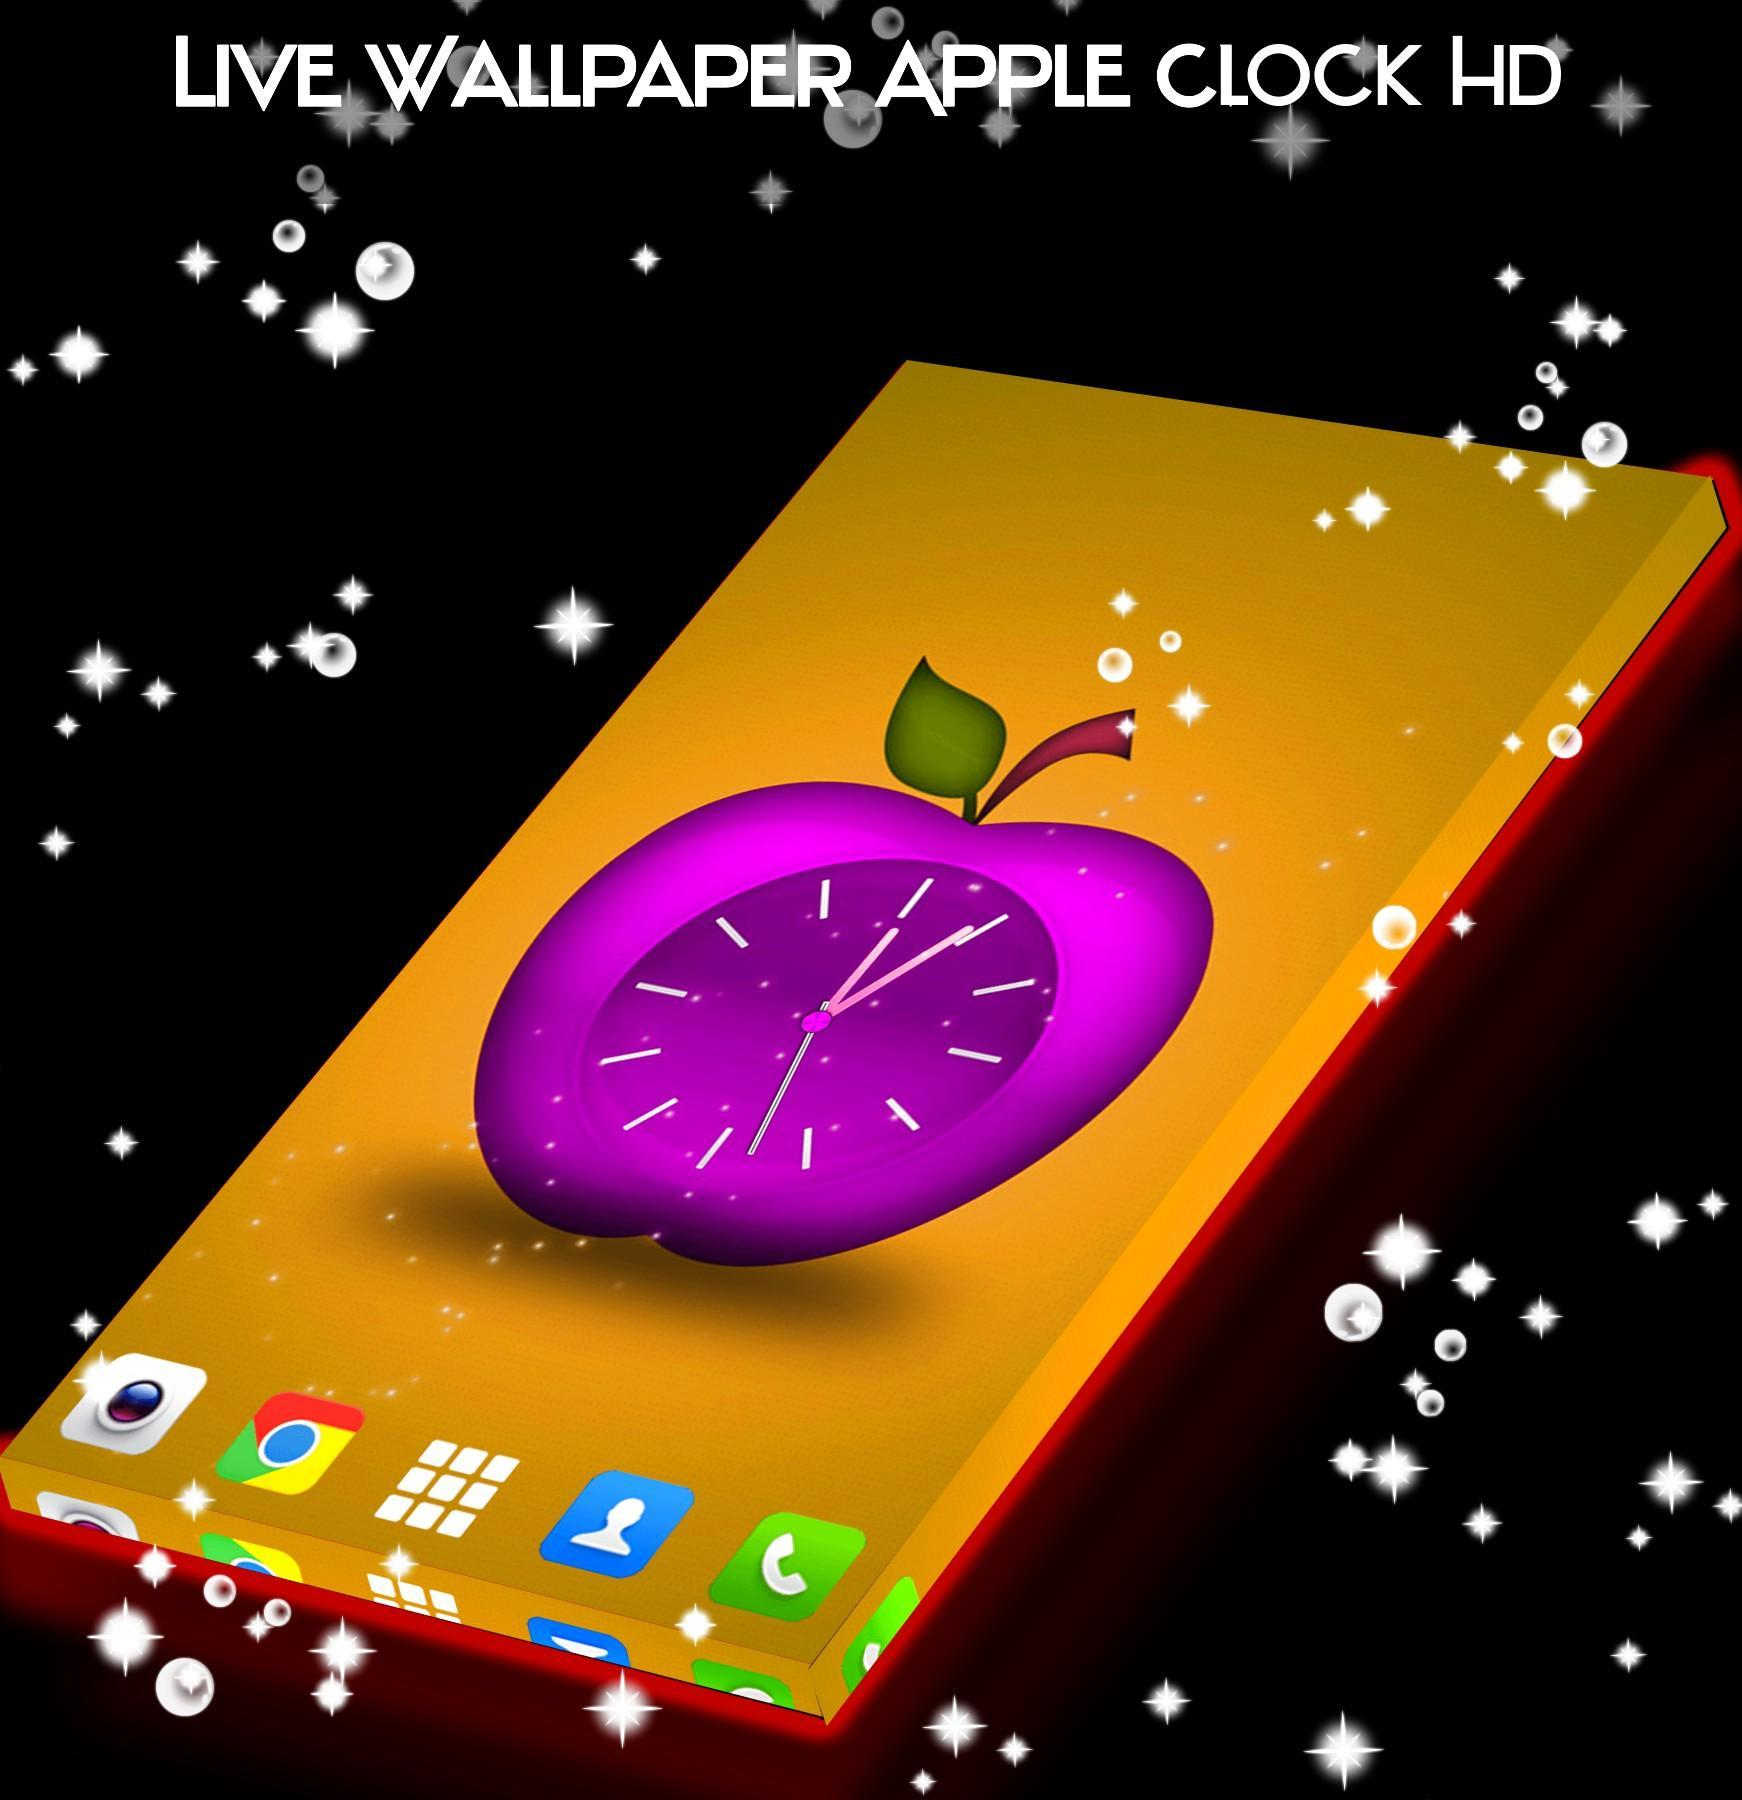 Wallpaper Hidup Jam Apple Hd For Android Apk Download